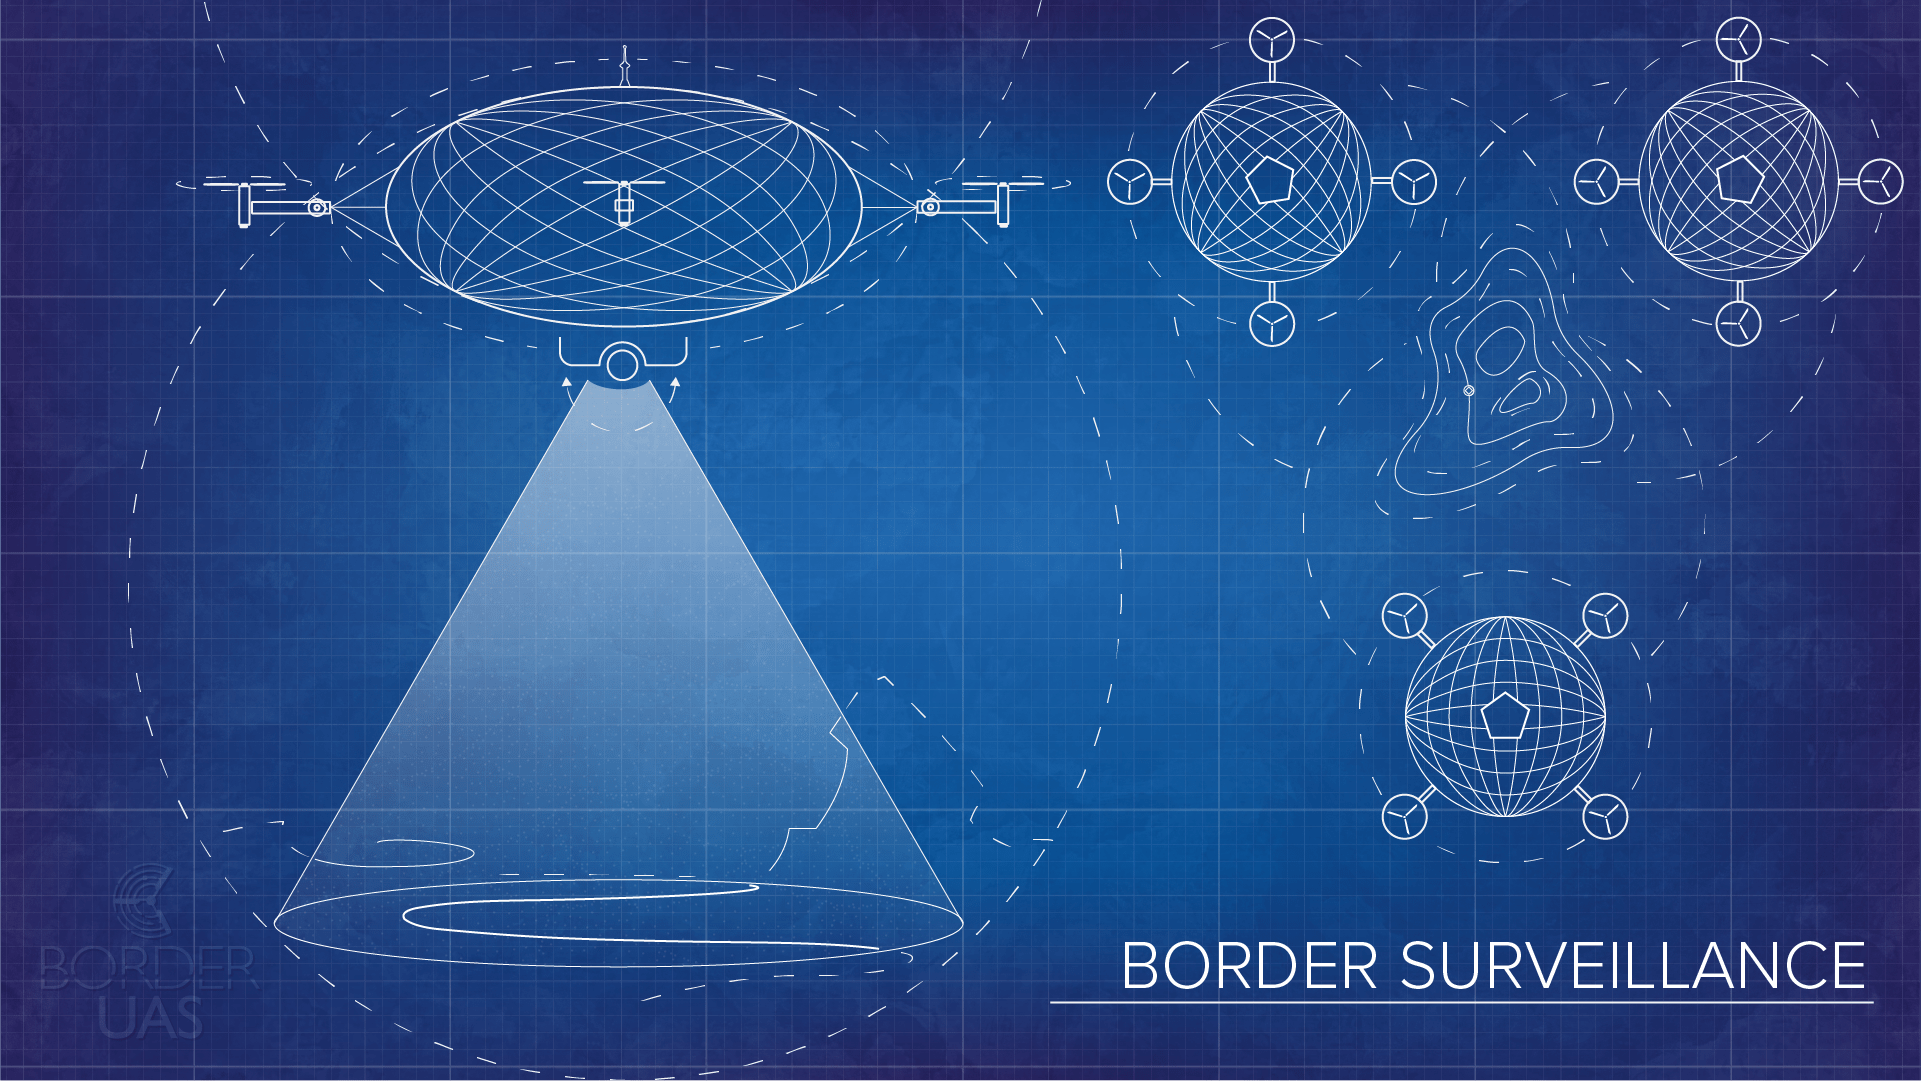 Blueprint 04 Border Surveillance v.2